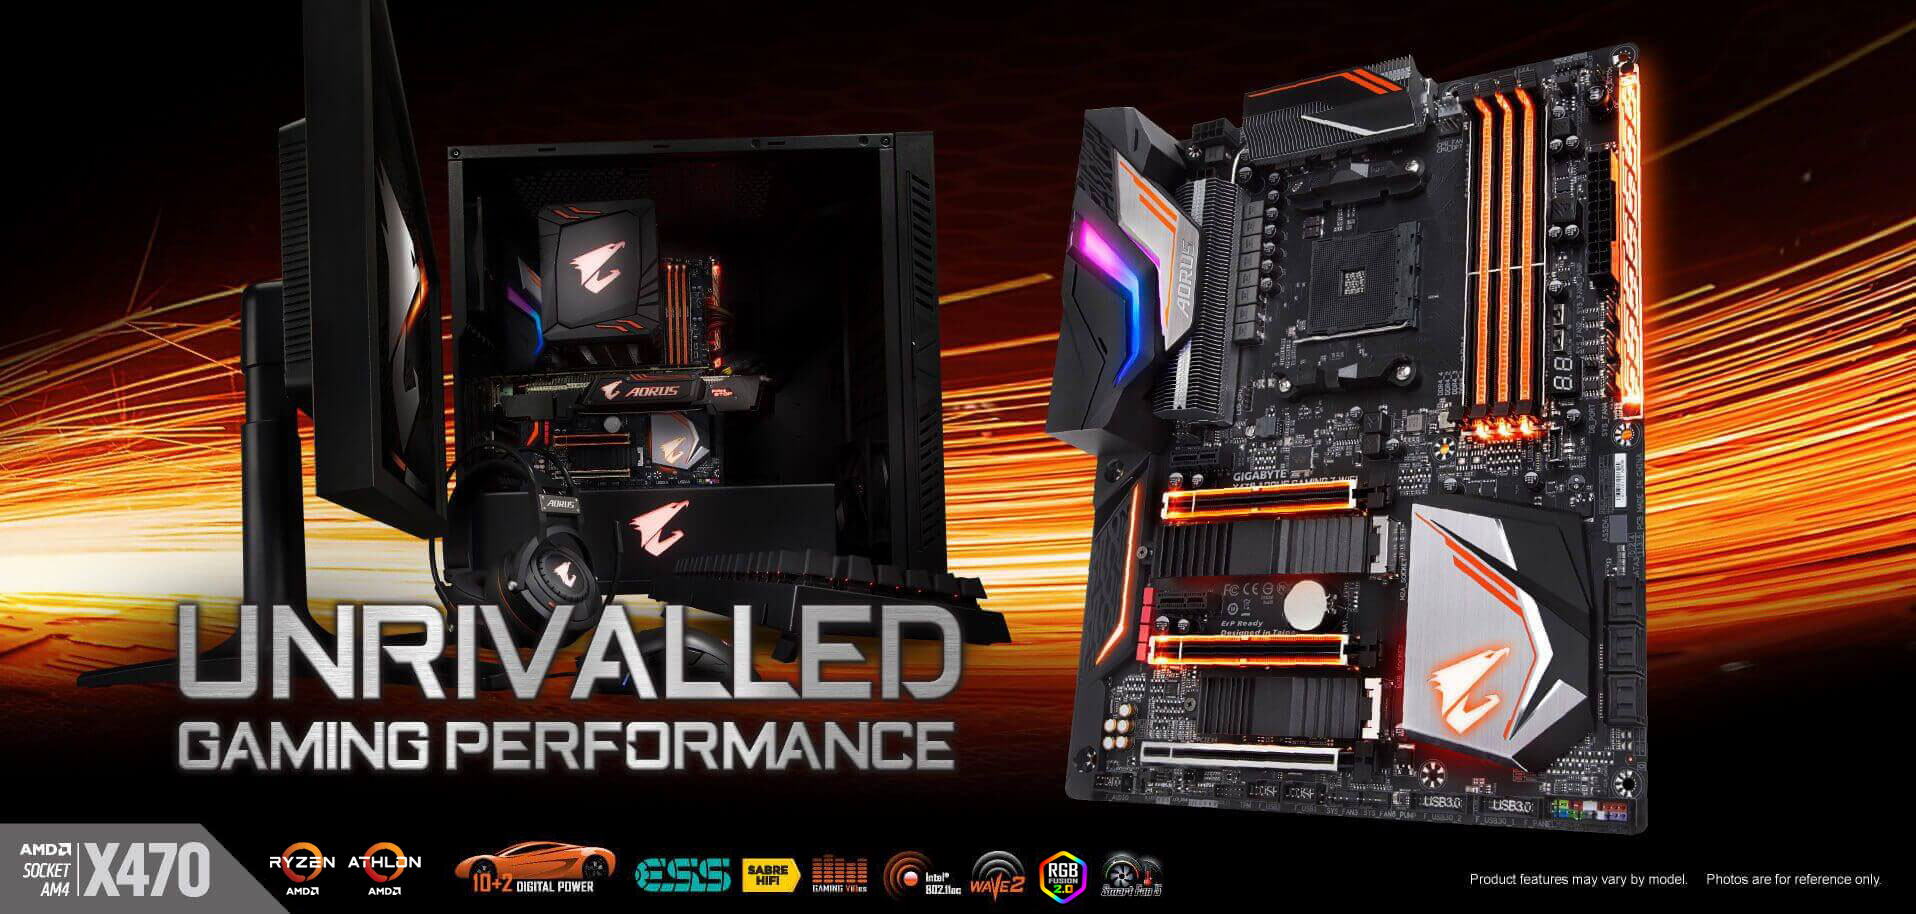 X470 Aorus Gaming 7 Wifi Rev 10 Motherboard Gigabyte Global There Are 2 Boards The Main Board And A Second One For Controls Design Concept